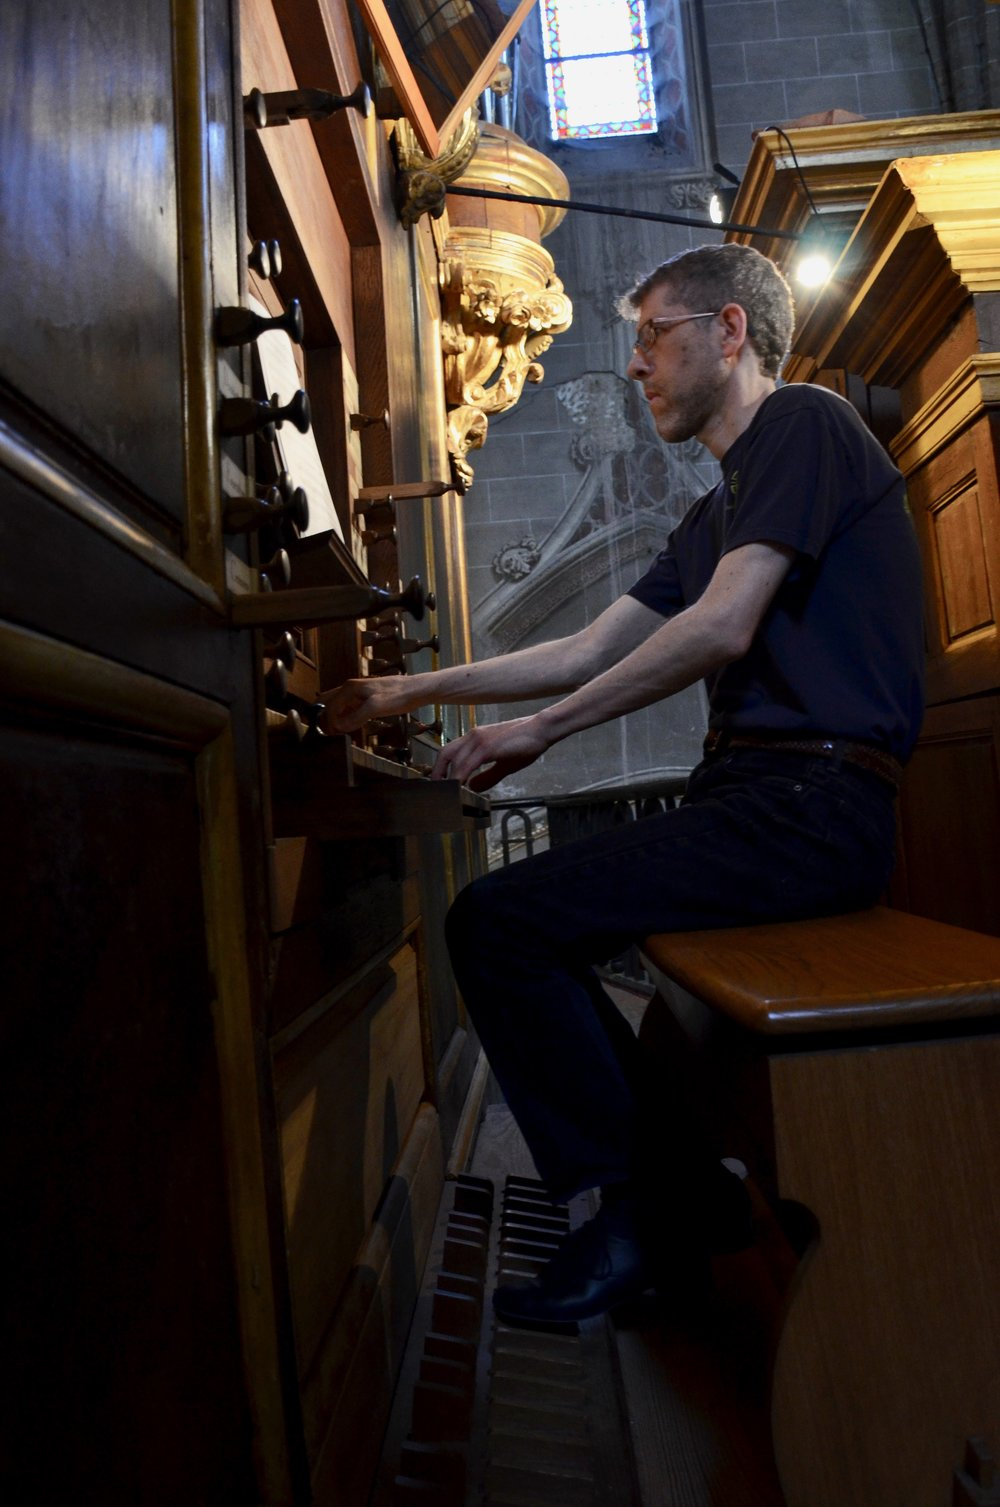 Chris Porter plays the historic organ in Cintegabelle, France.